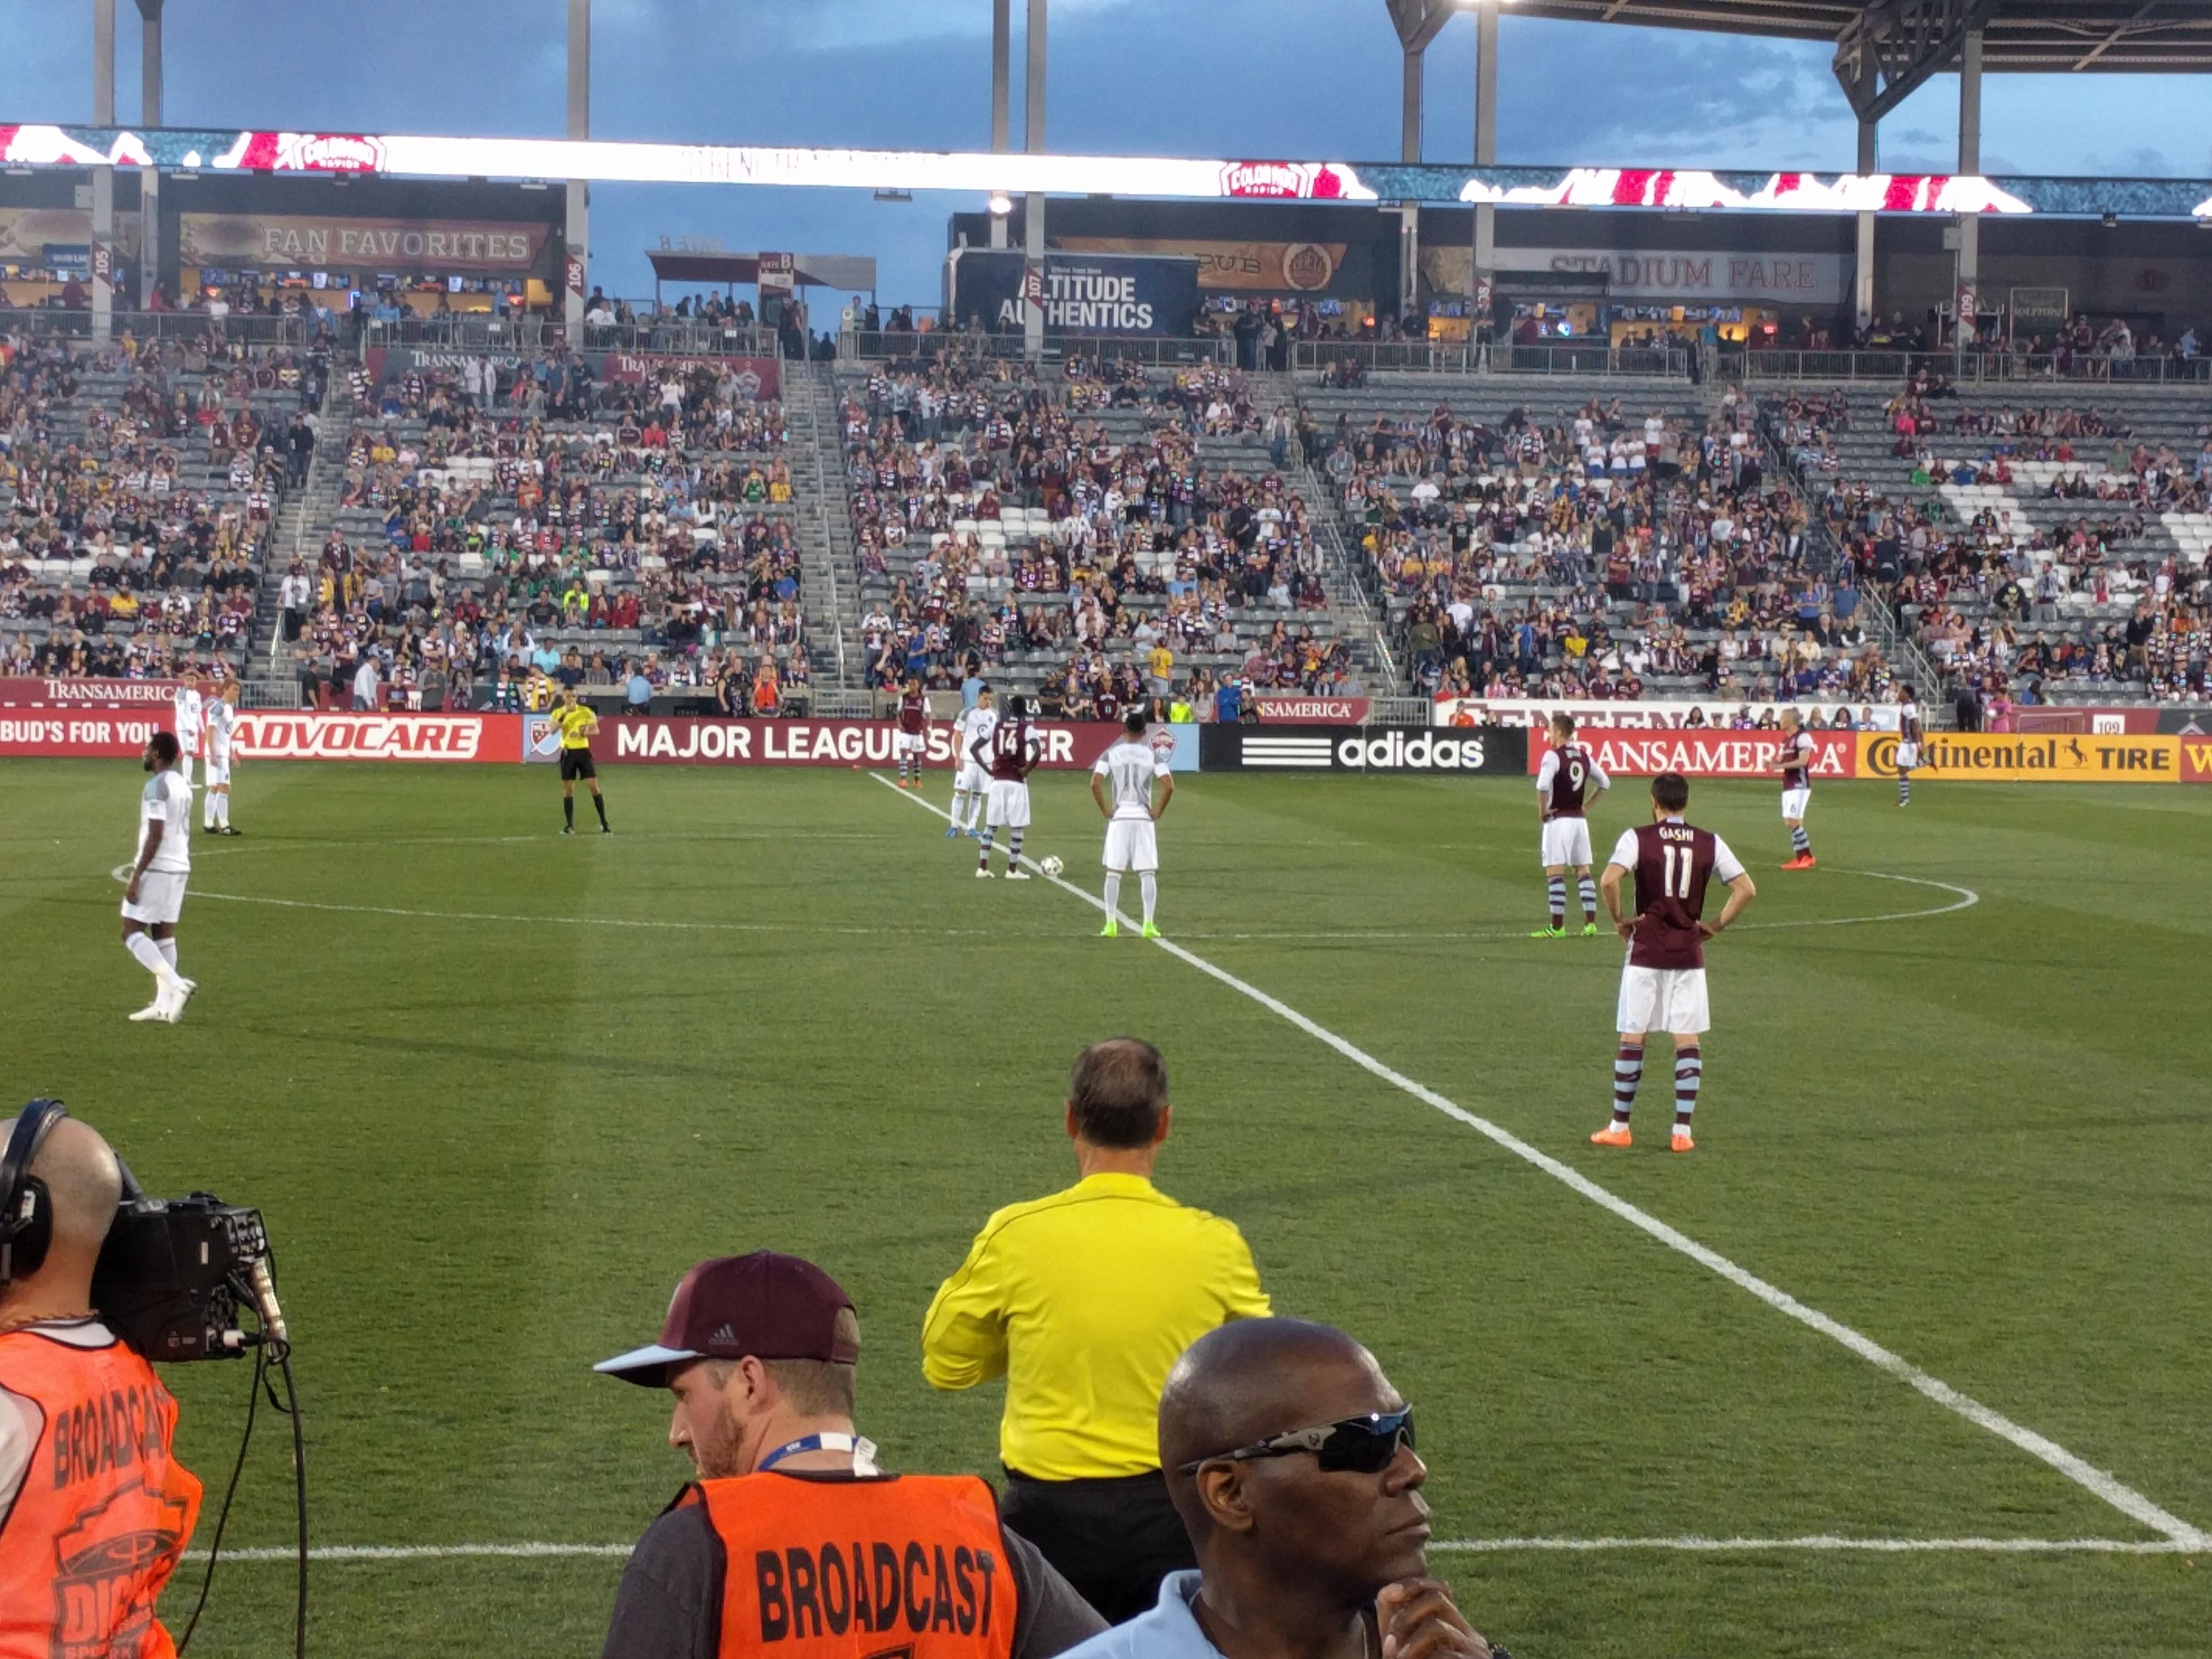 Dick's Sporting Goods Park Section 129 Row 3 Seat 7